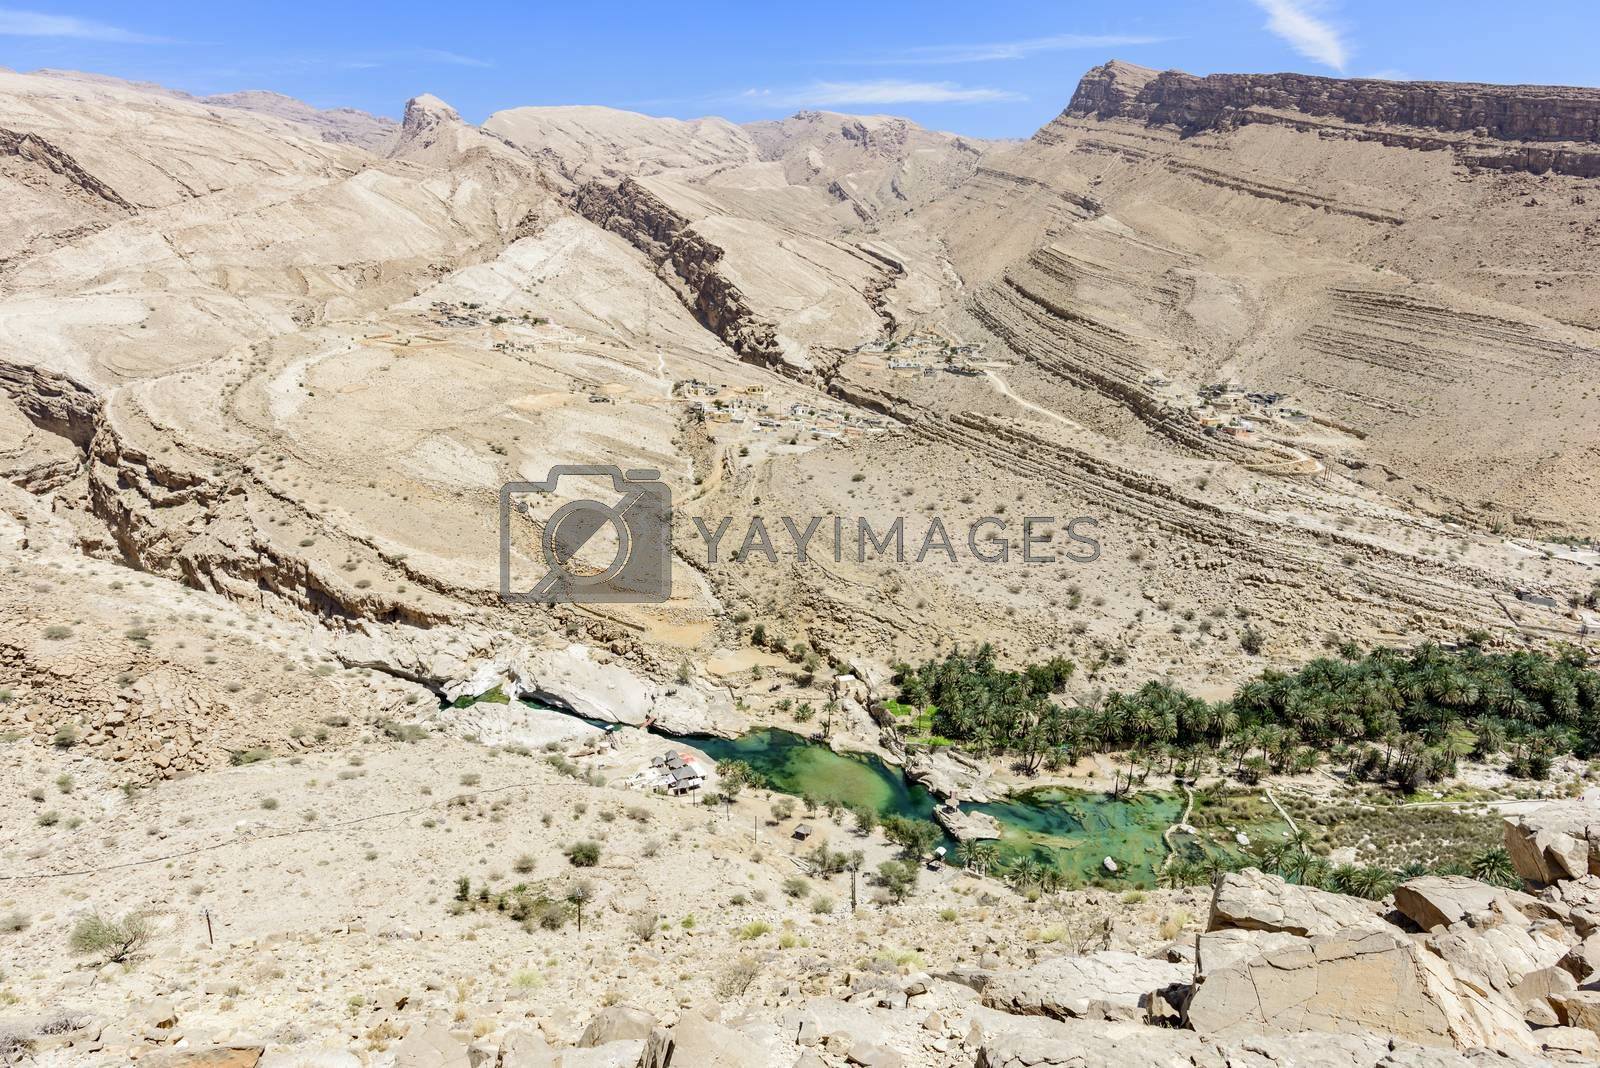 Scenic view of Wadi Bani Khalid, Sultanate of Oman. We can see the main pool and many tourists going and coming in/from the canyon. This is one of the most visited wadi in Oman with easy access. Many travel agencies are stopping by. It is a main destination.